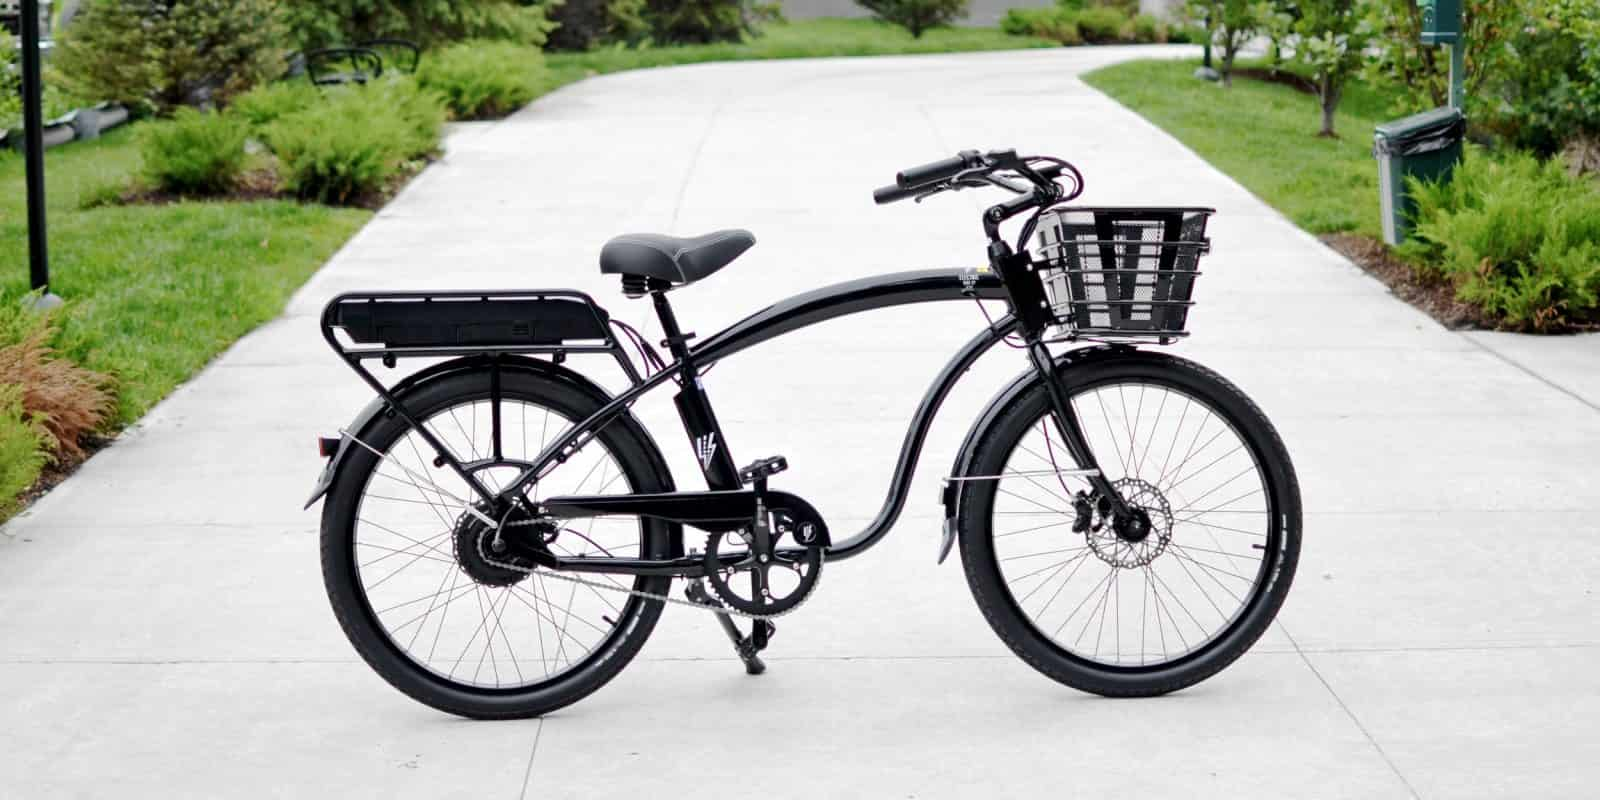 stylish black cruiser bike with basket